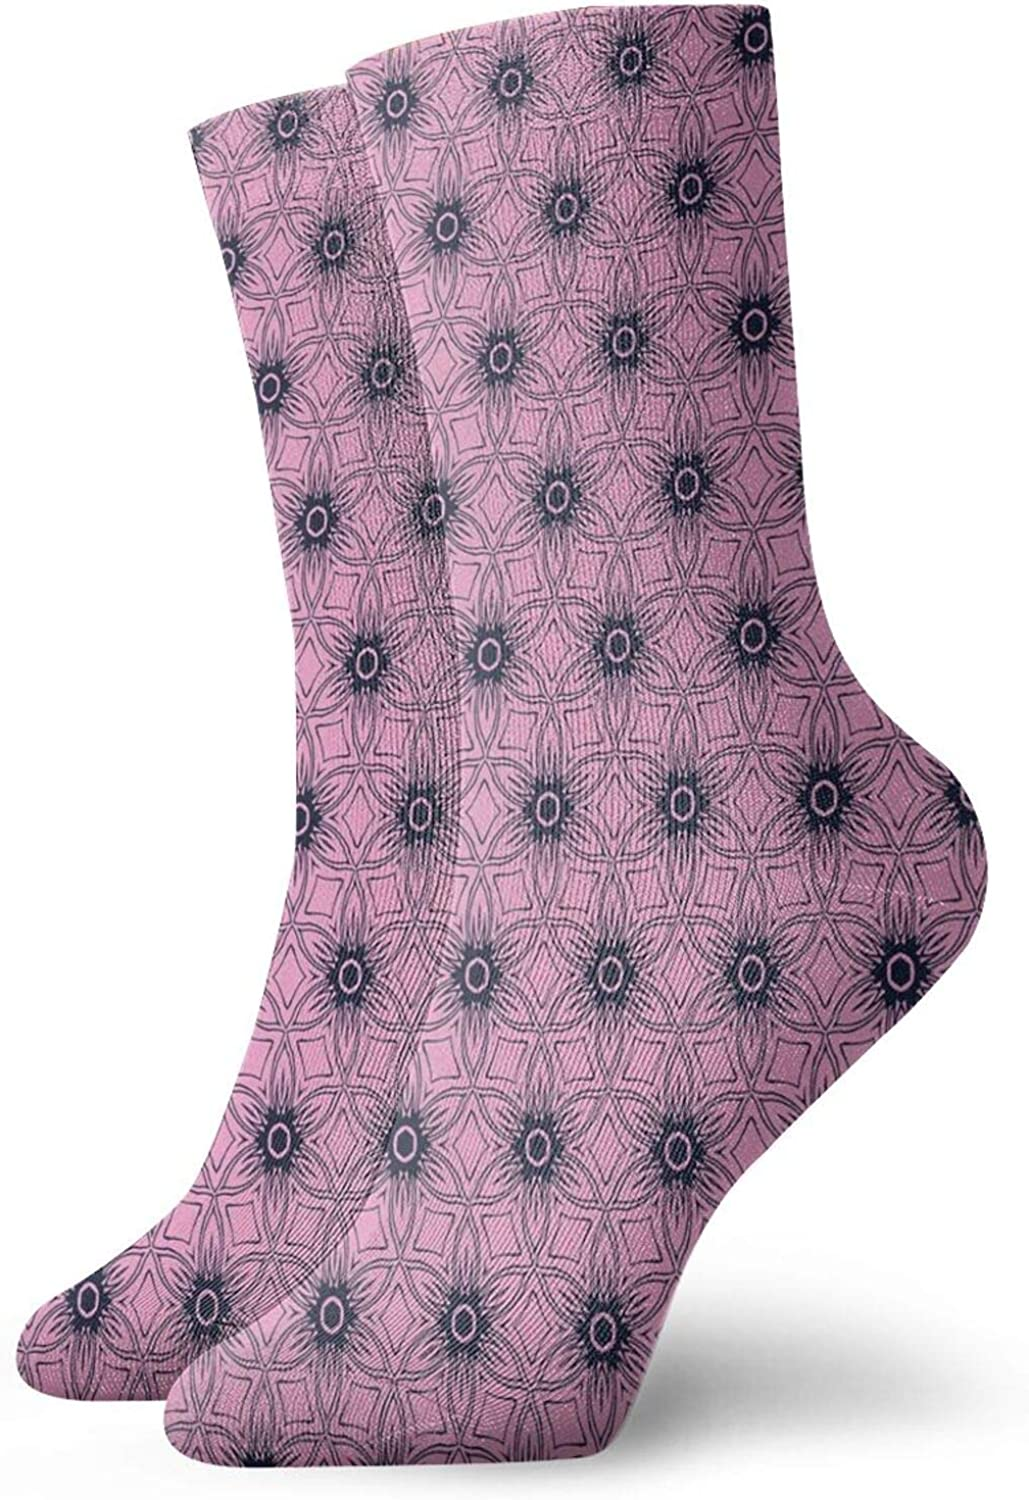 Compression Ankle Albuquerque Mall Socks for Limited time trial price Athletic C Unisex Running